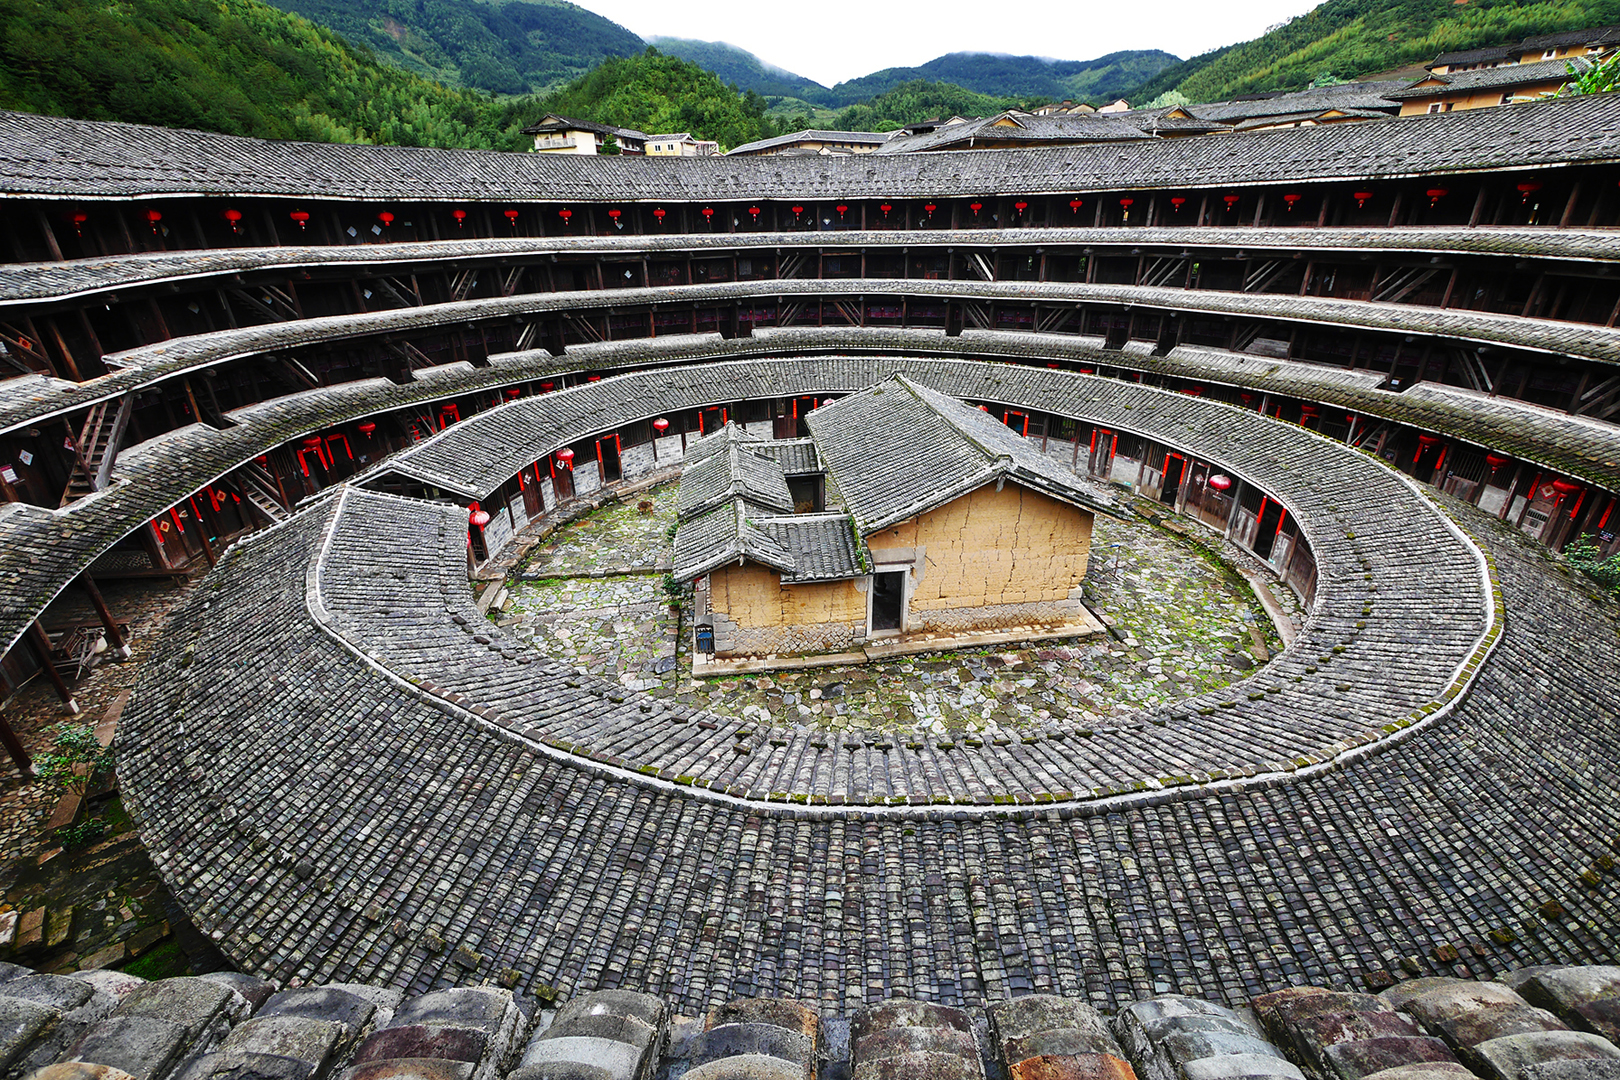 Discovering amazing architectural treasure in China.